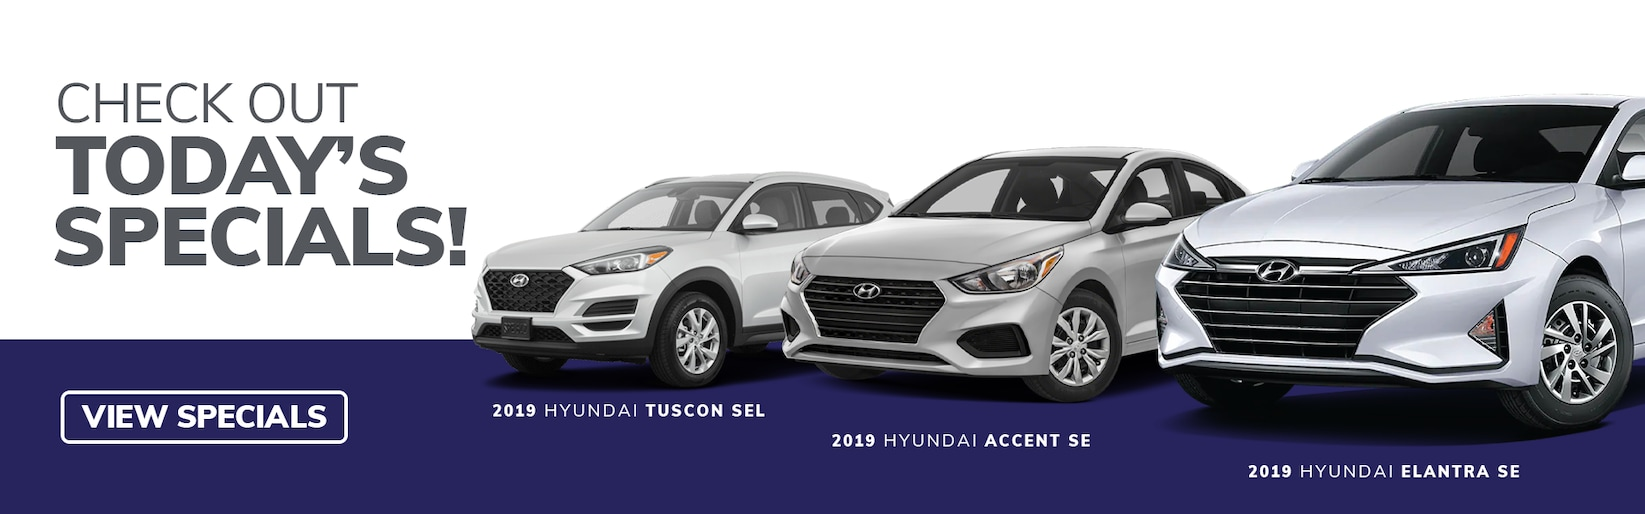 Tim Short Pikeville Ky >> Tim Short Hyundai | Pikeville, KY | New & Used Hyundai Dealership